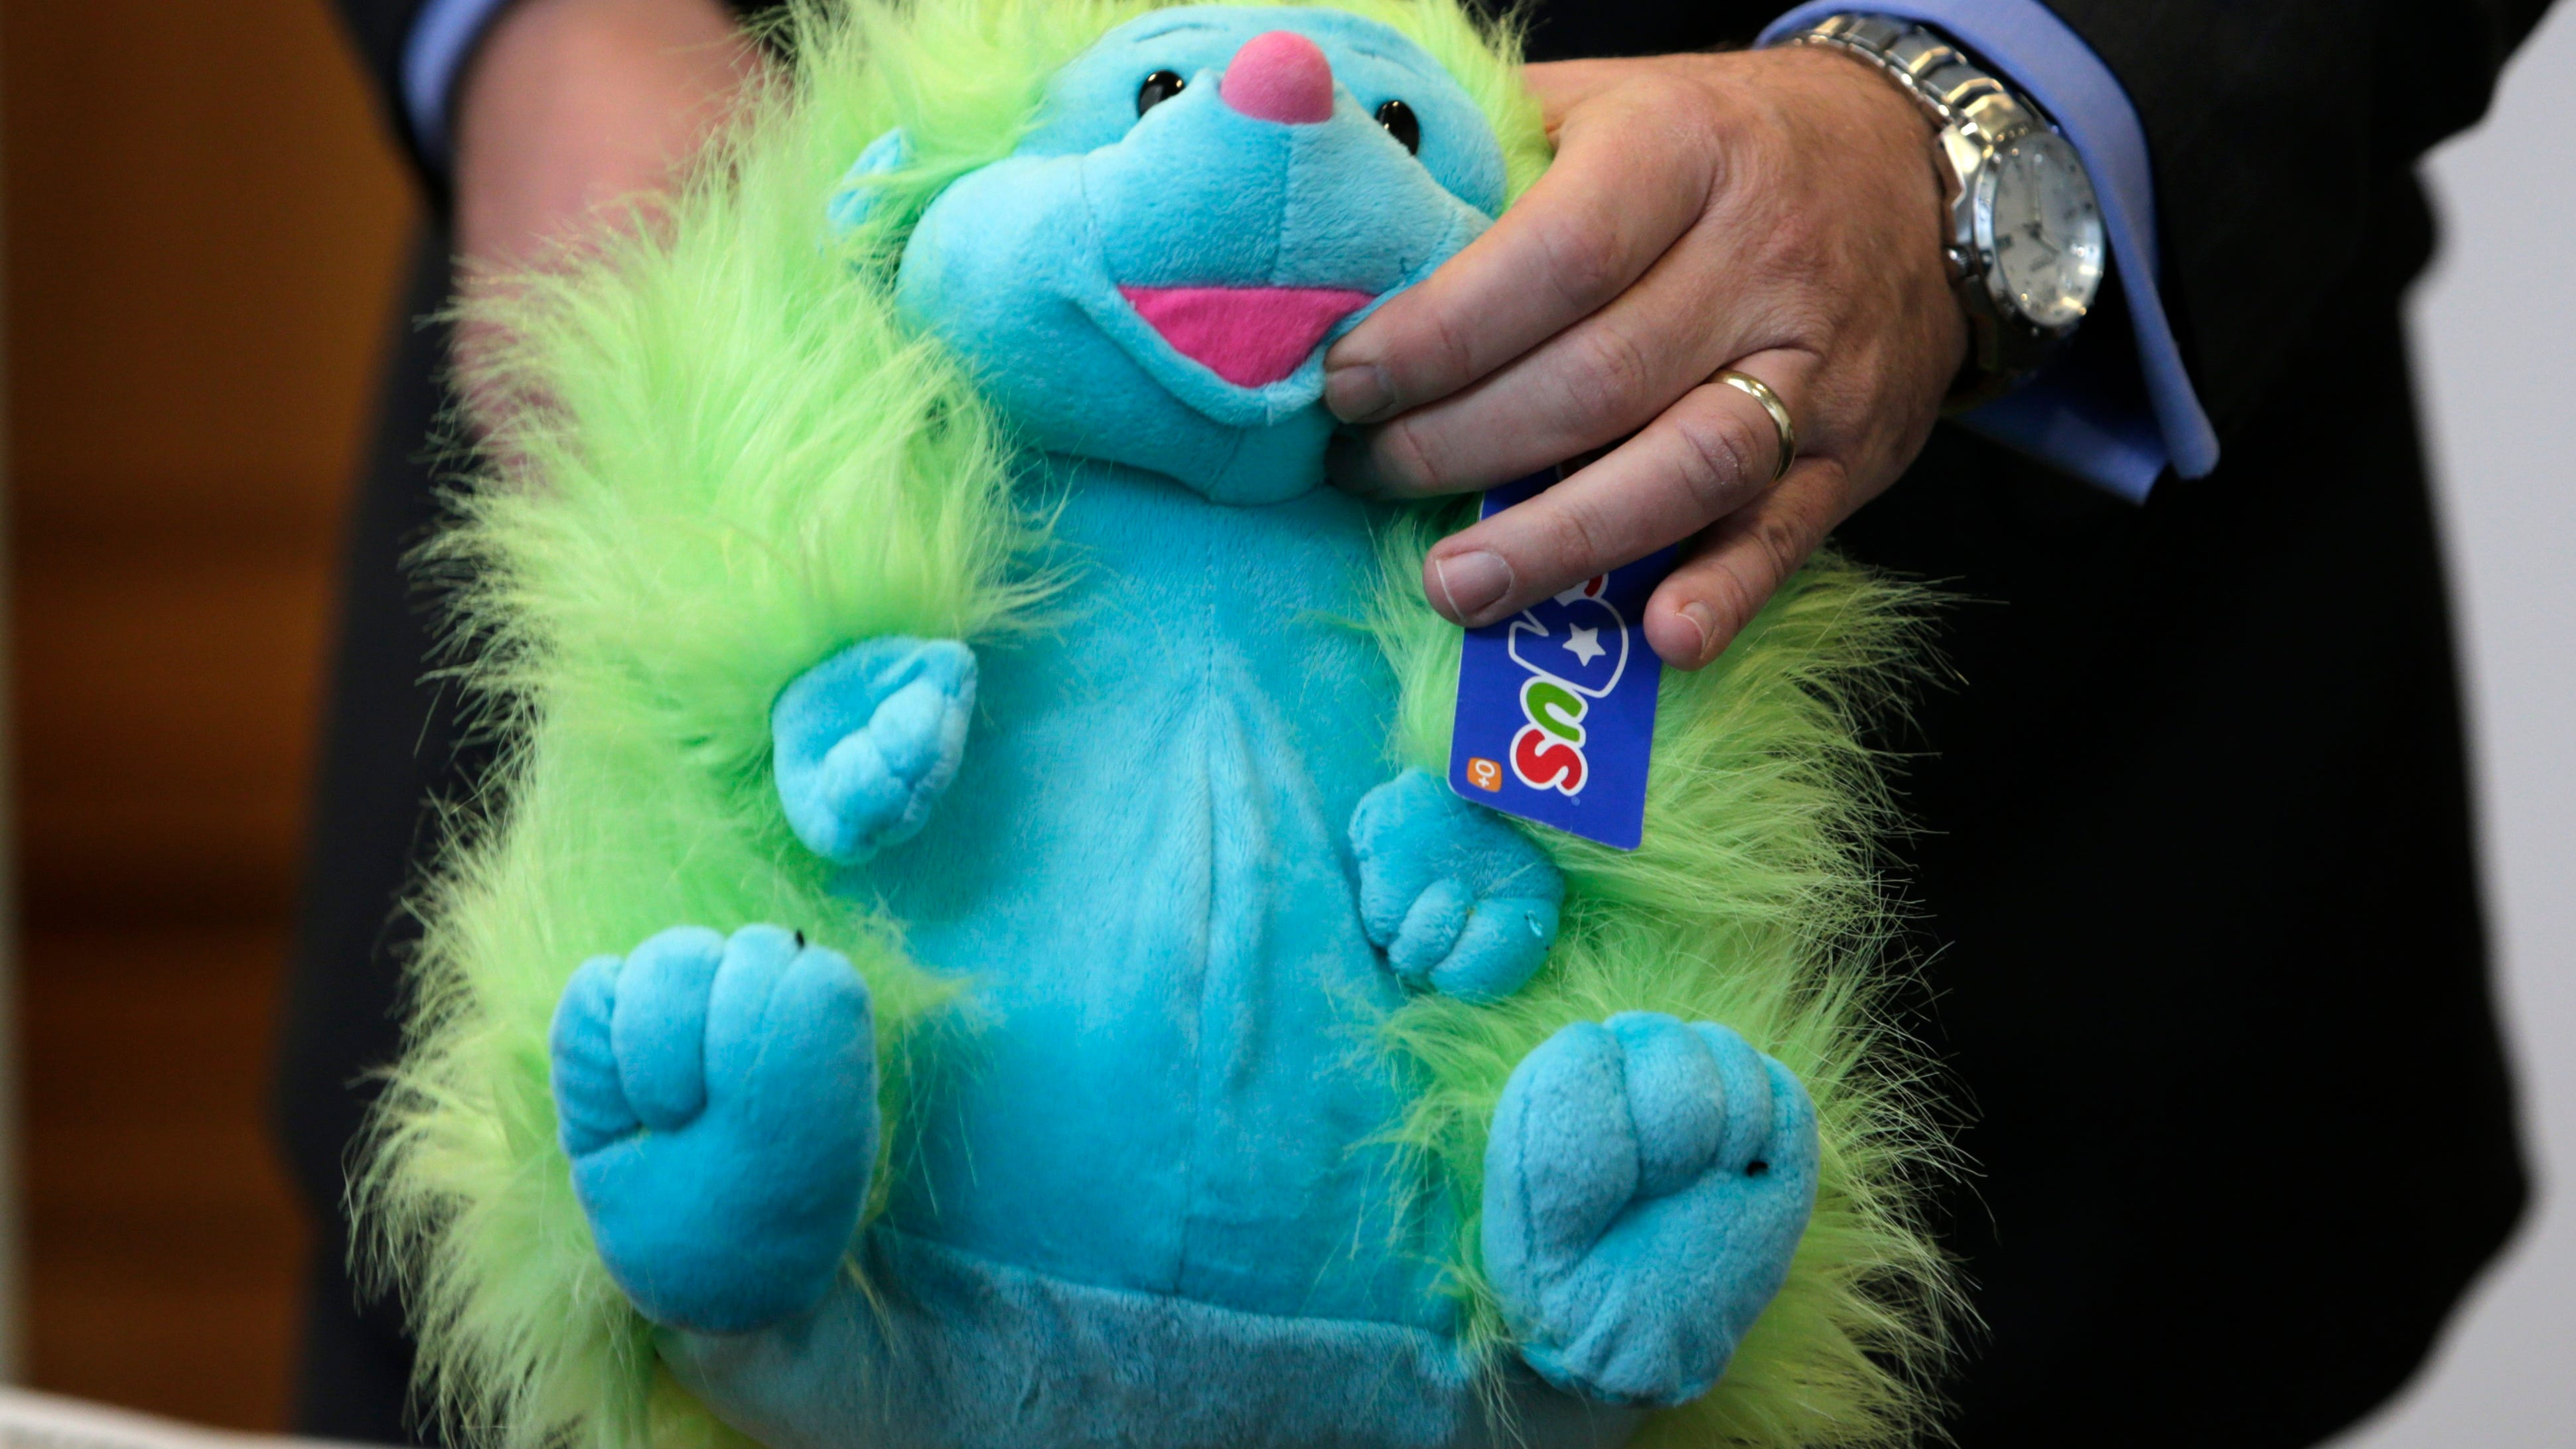 """JC TOYS CATERPILLAR BLUE BABY BOTTLE 4/"""" TALL DOLL NOT INCLUDED"""